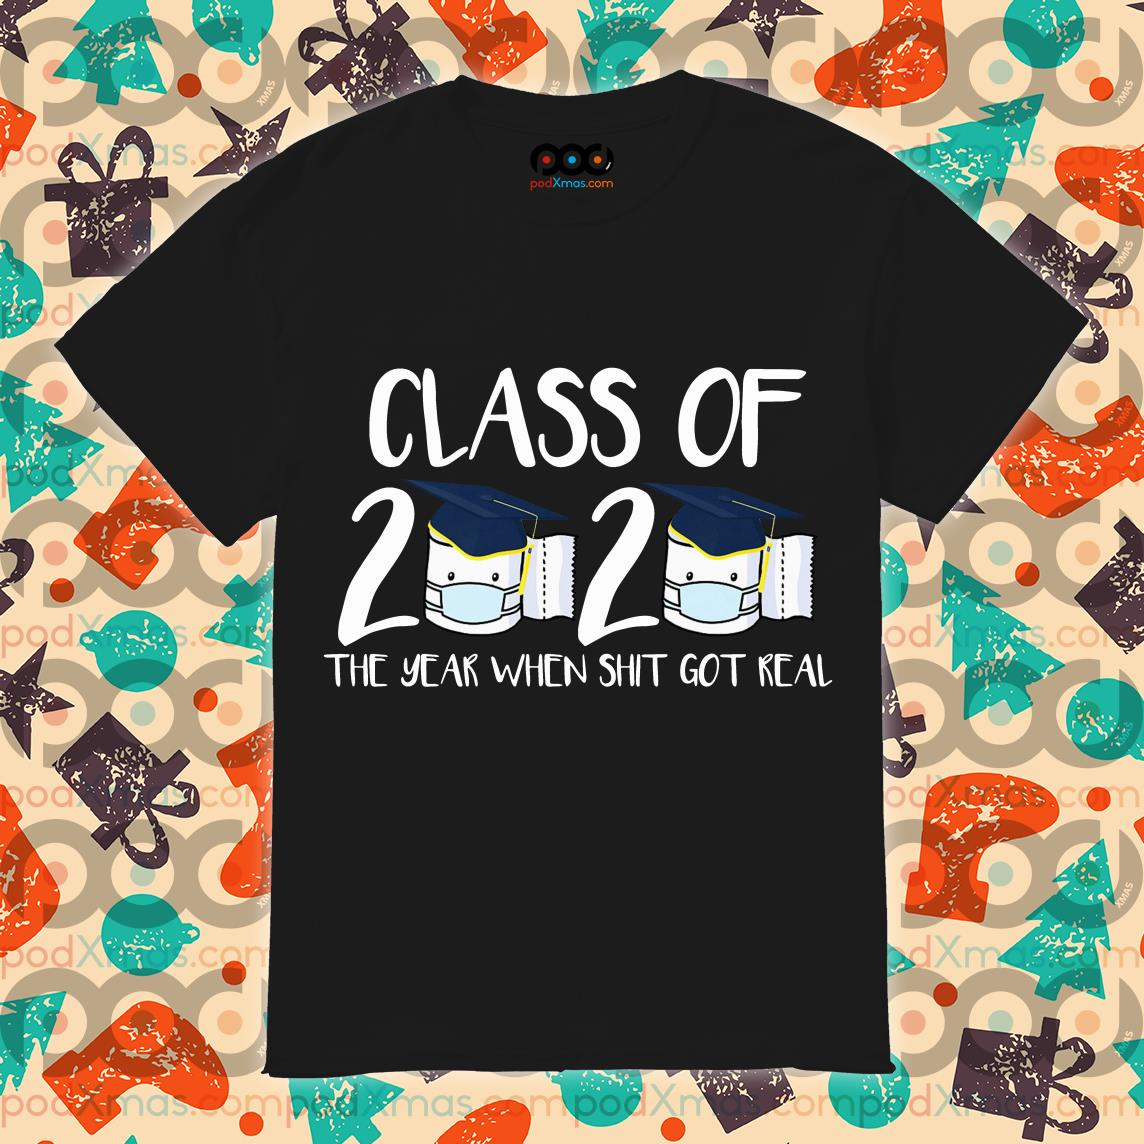 Class of 2020 the year when thit got real Toilet paper Tee Shirt